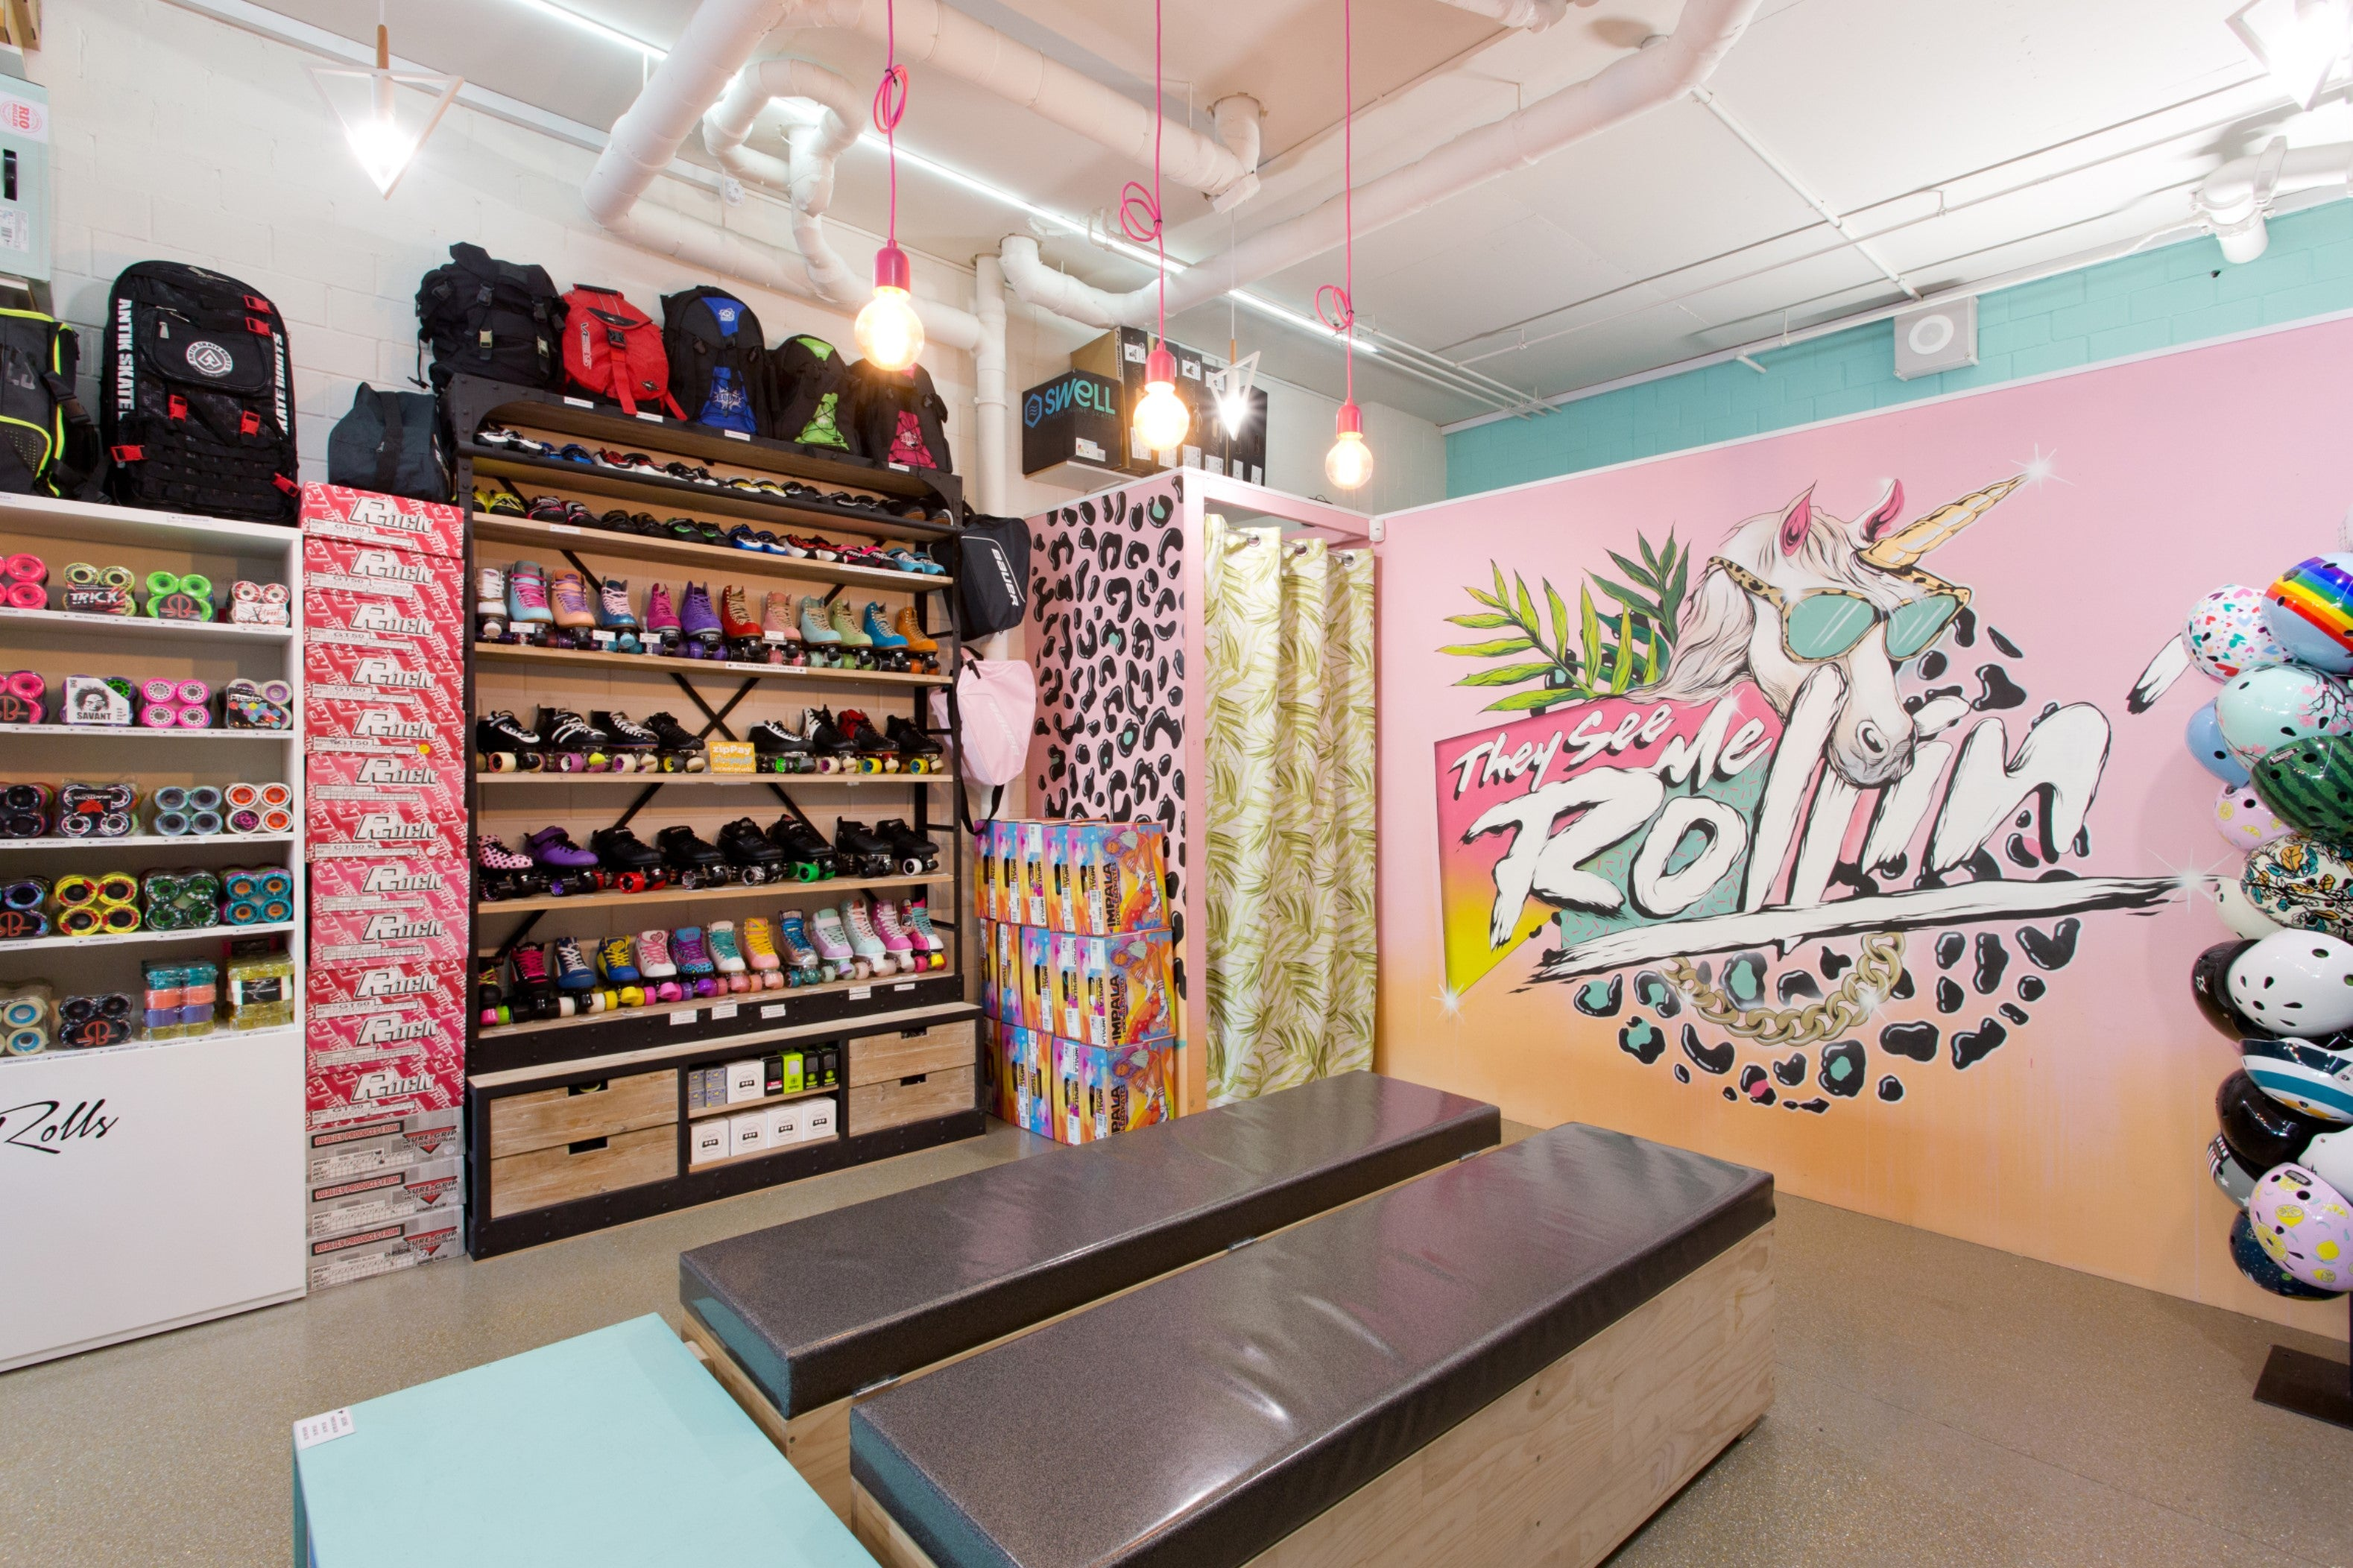 Unique shopping at Lucky Skates with glitter and unicorns – a mural by local artist Peche ©Lucky Skates